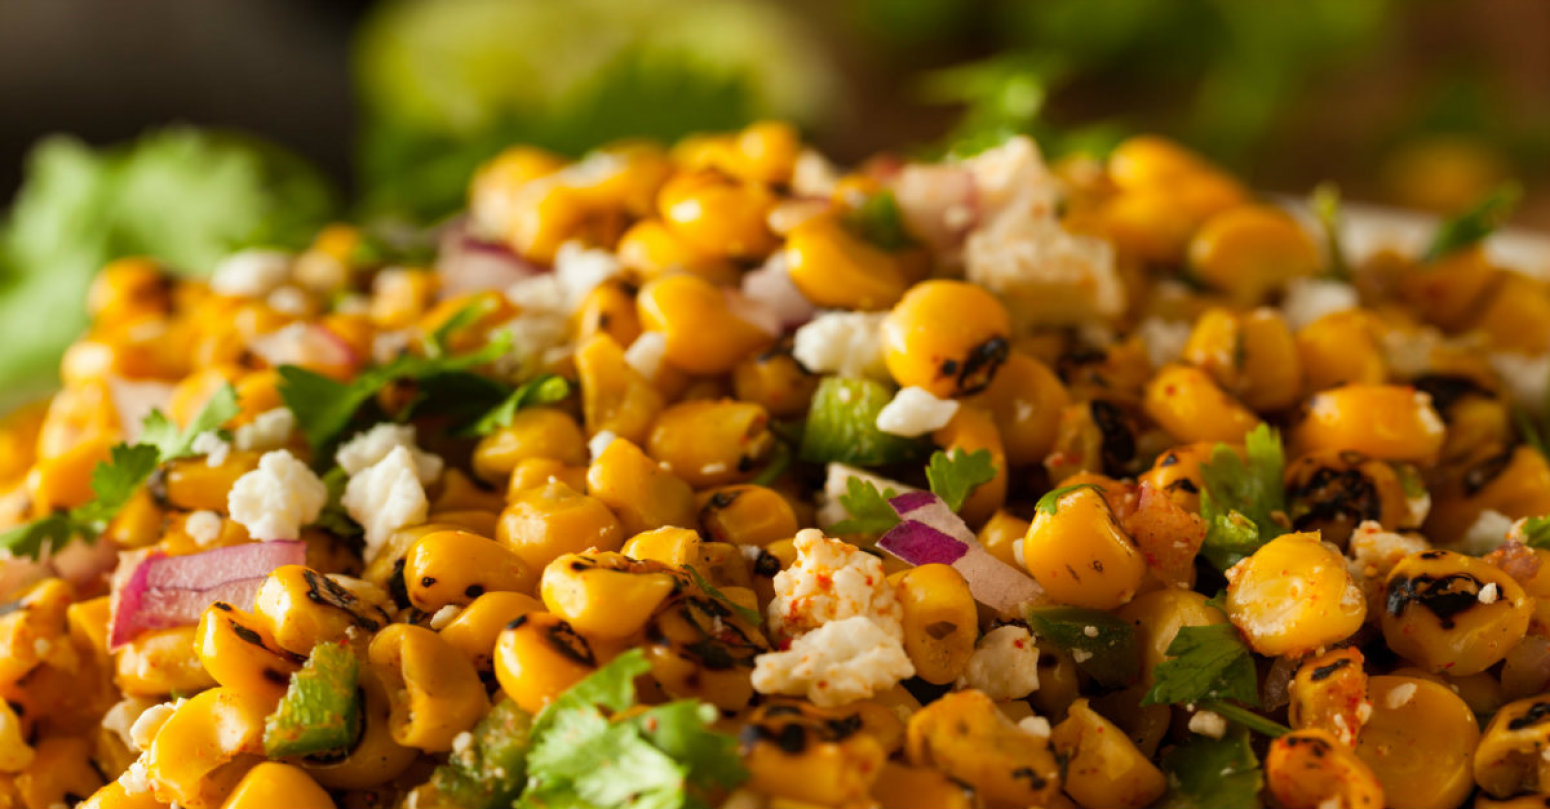 Mexican Corn Salad Recipe 6 | Just A Pinch Recipes